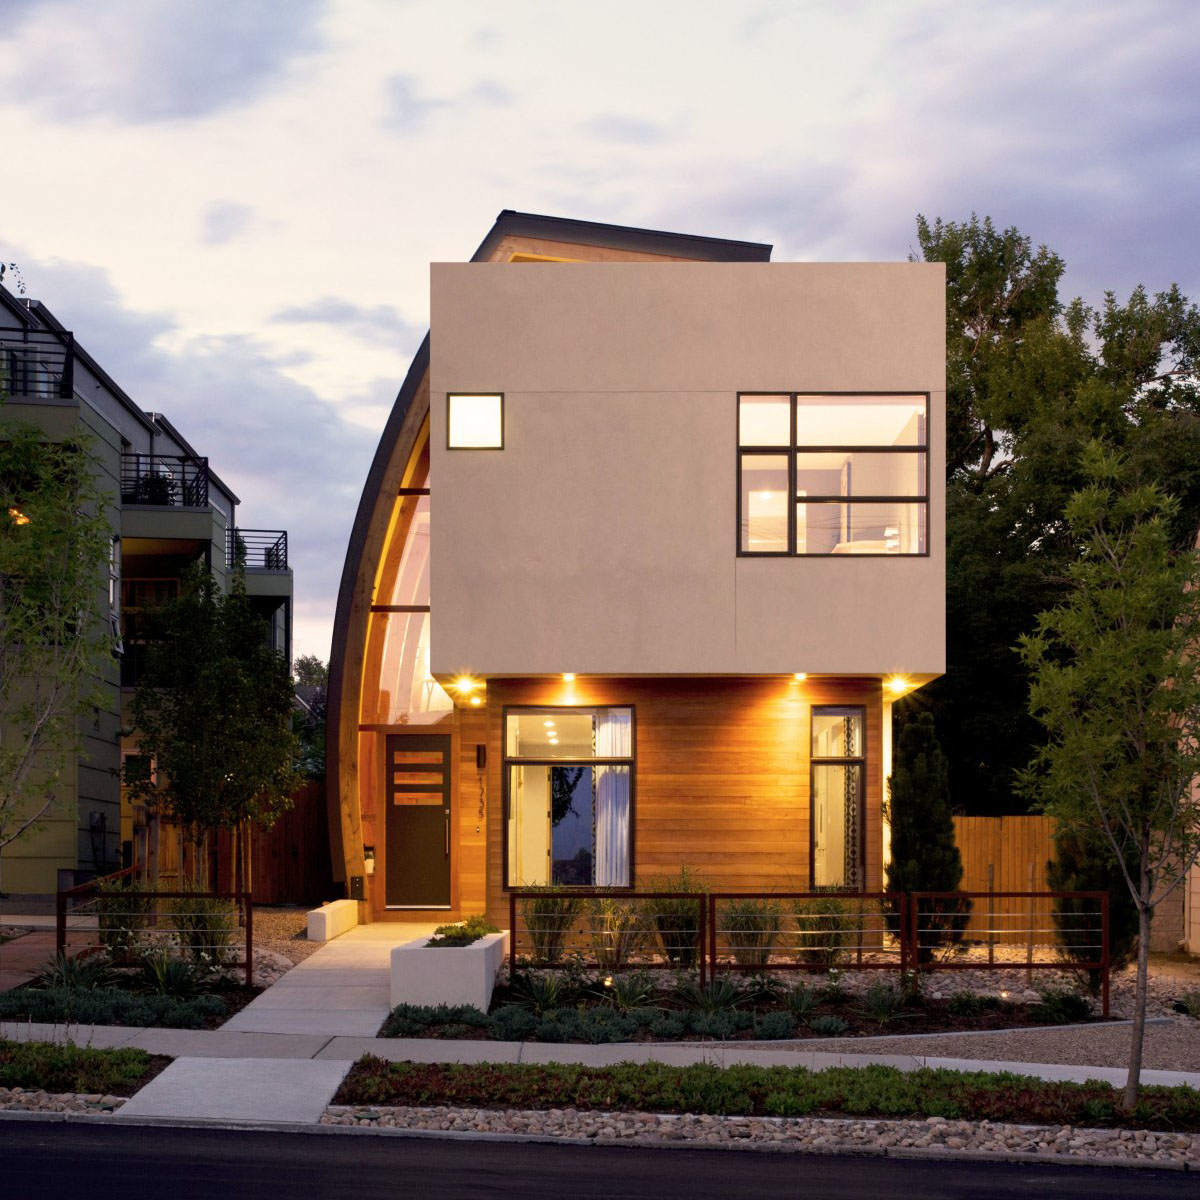 Inspiring urban infill with sun catching curve metal Modern house columns